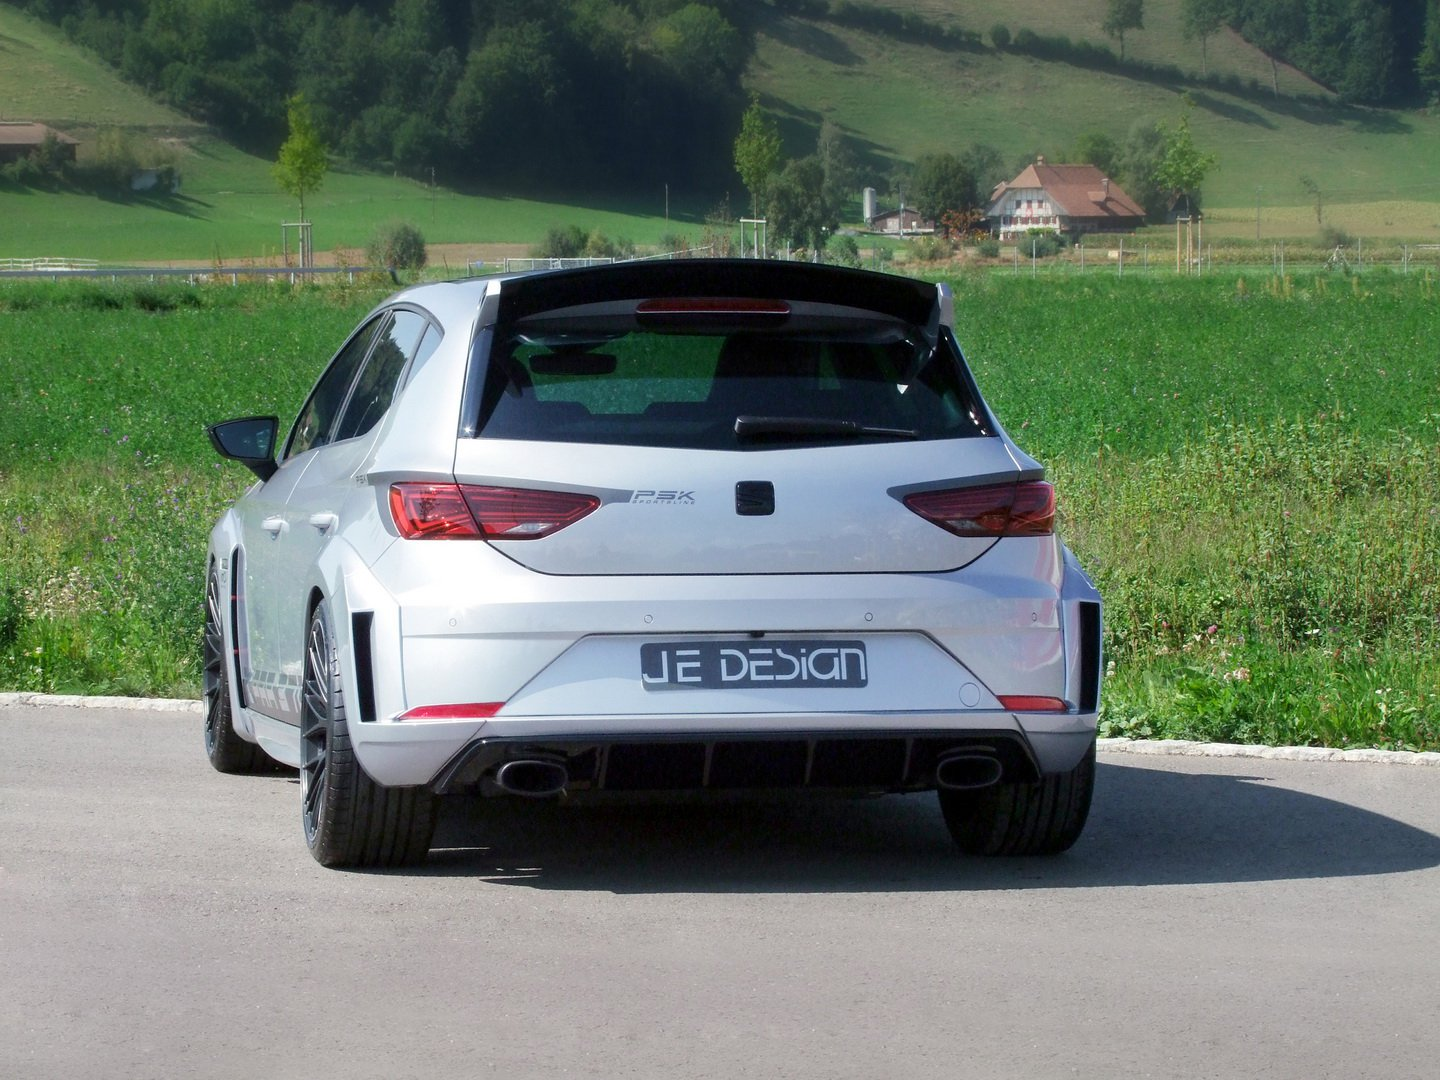 Seat Leon Cupra by JE Design (3)